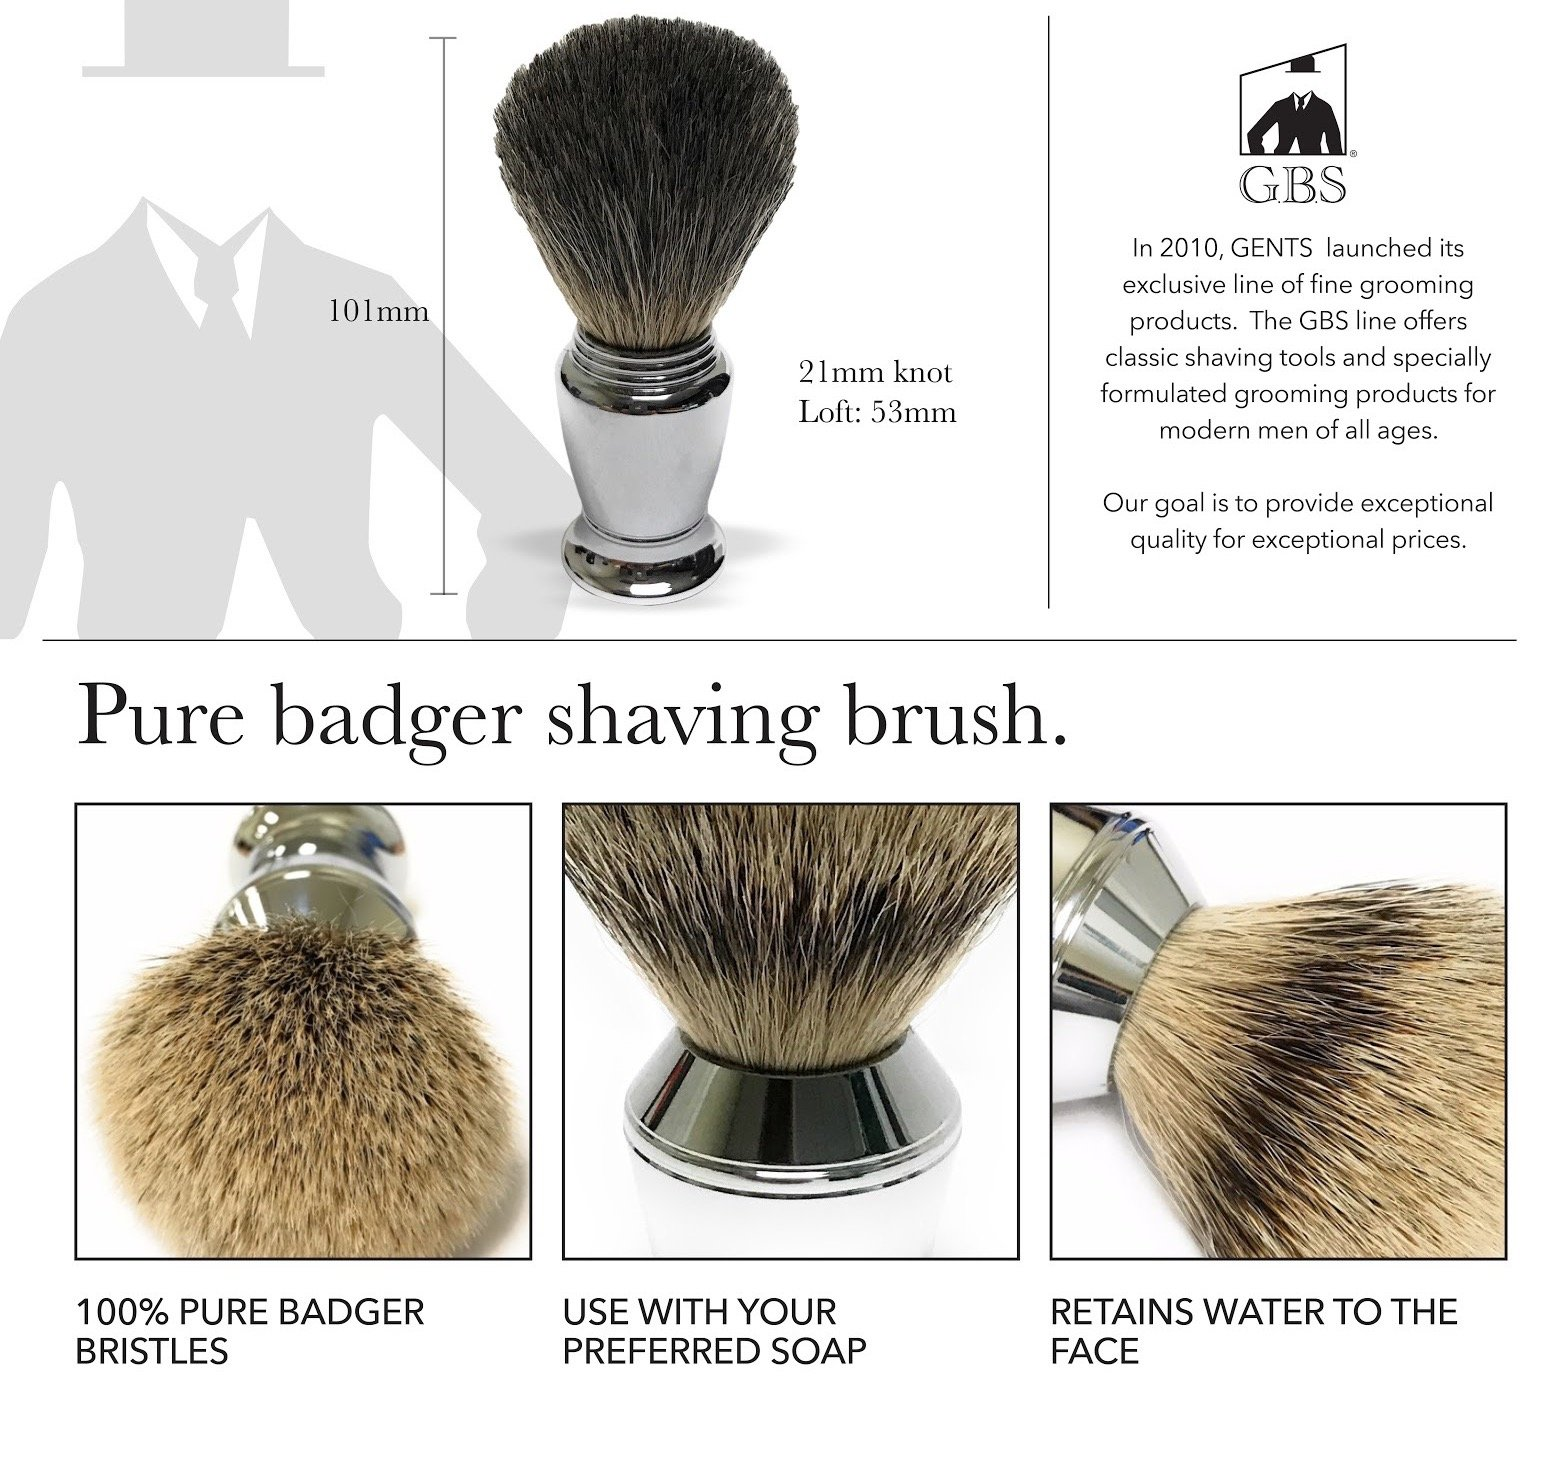 GBS Men's premium Wet Grooming Shaving Set - Gift Boxed - Heavy Duty Traditional Handle Double Edge Safety Razor, Pure Badger Bristle Brush & Razor Stand, Bowl with Soap + Free Blades included!